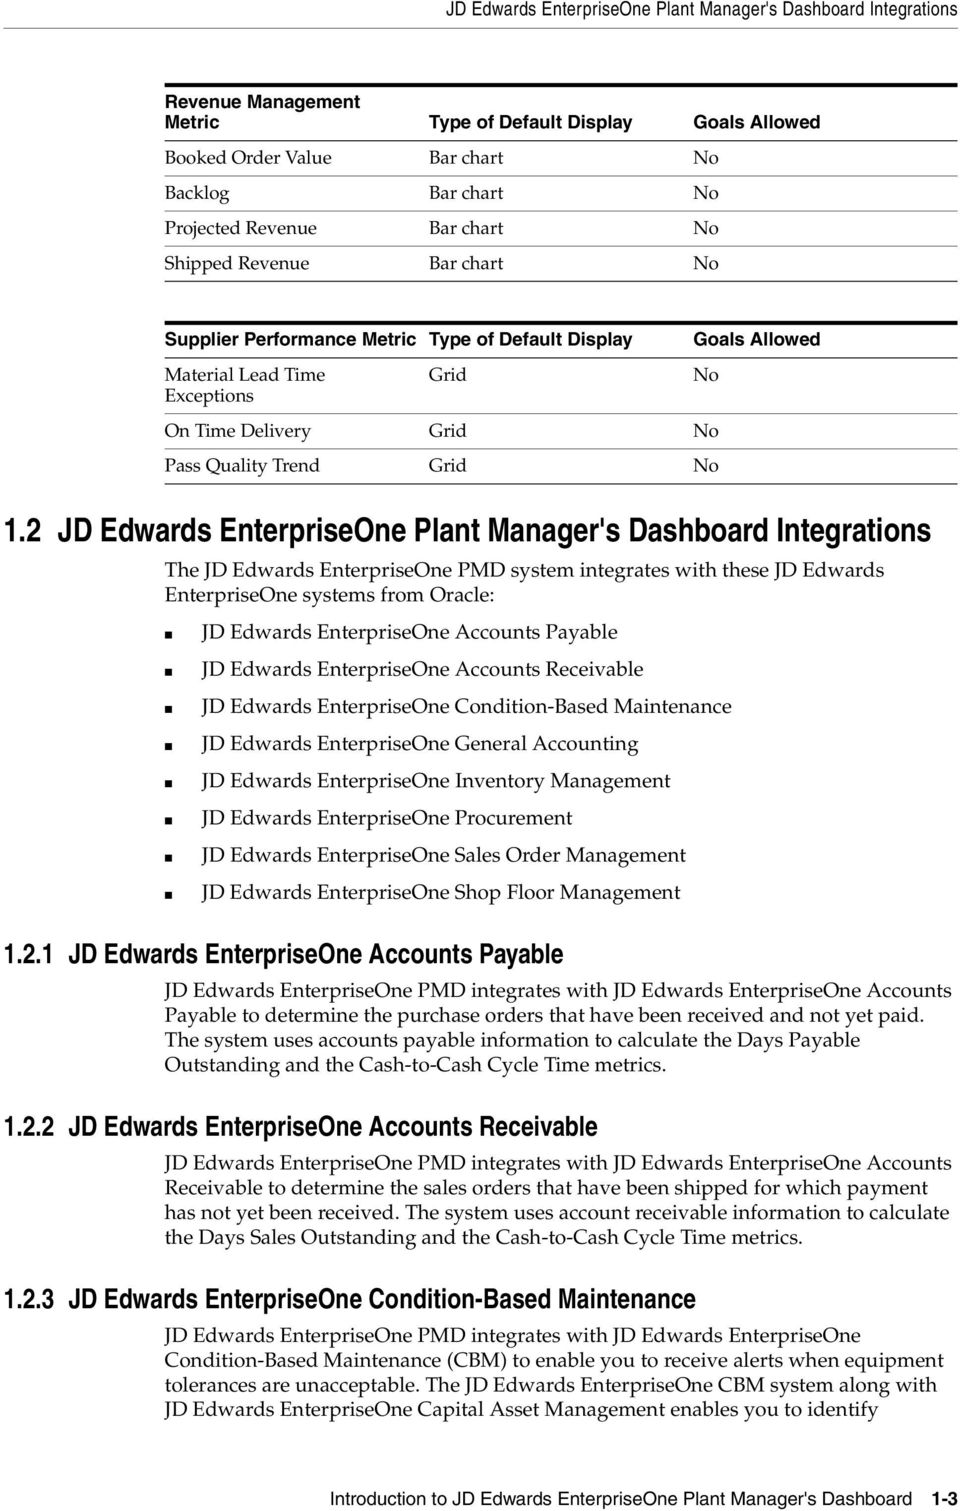 2 JD Edwards EnterpriseOne Plant Manager's Dashboard Integrations The JD Edwards EnterpriseOne PMD system integrates with these JD Edwards EnterpriseOne systems from Oracle: Grid On Time Delivery